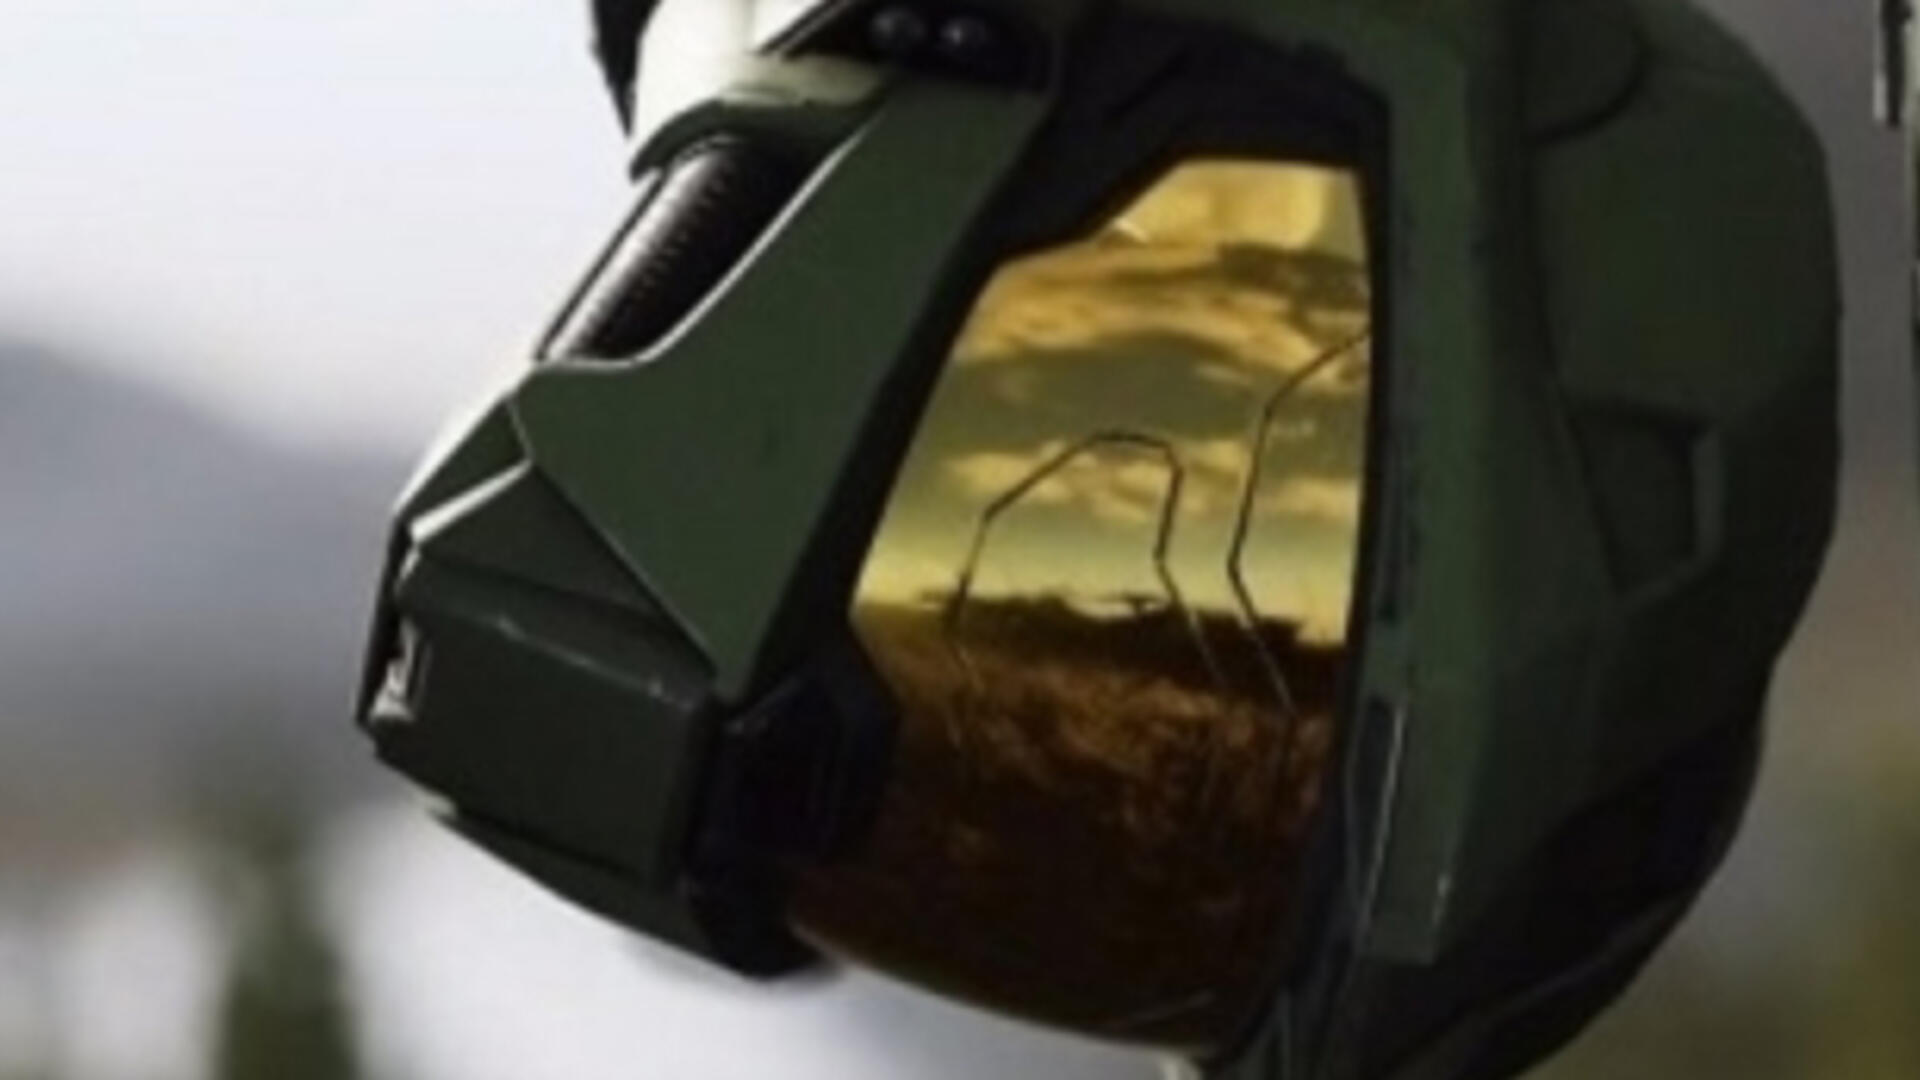 Halo Infinite is Indeed Halo 6, 343 Industries Confirms